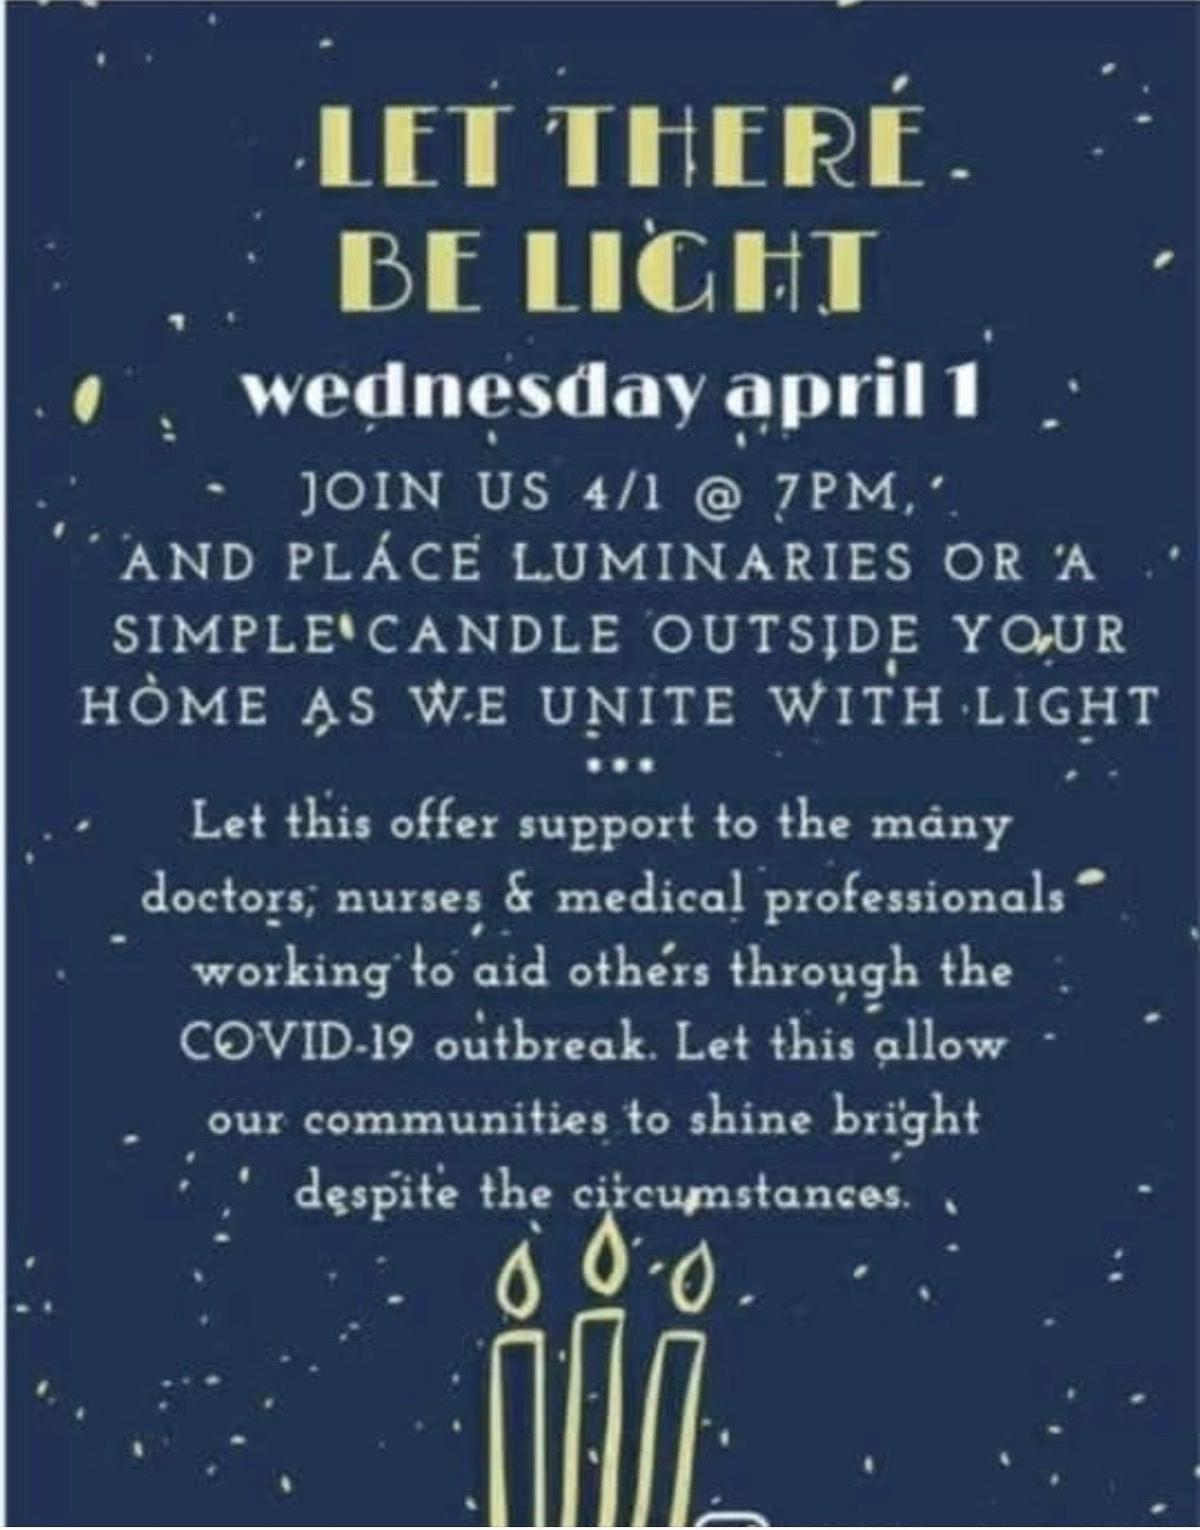 Let there be light healthcare support flyer